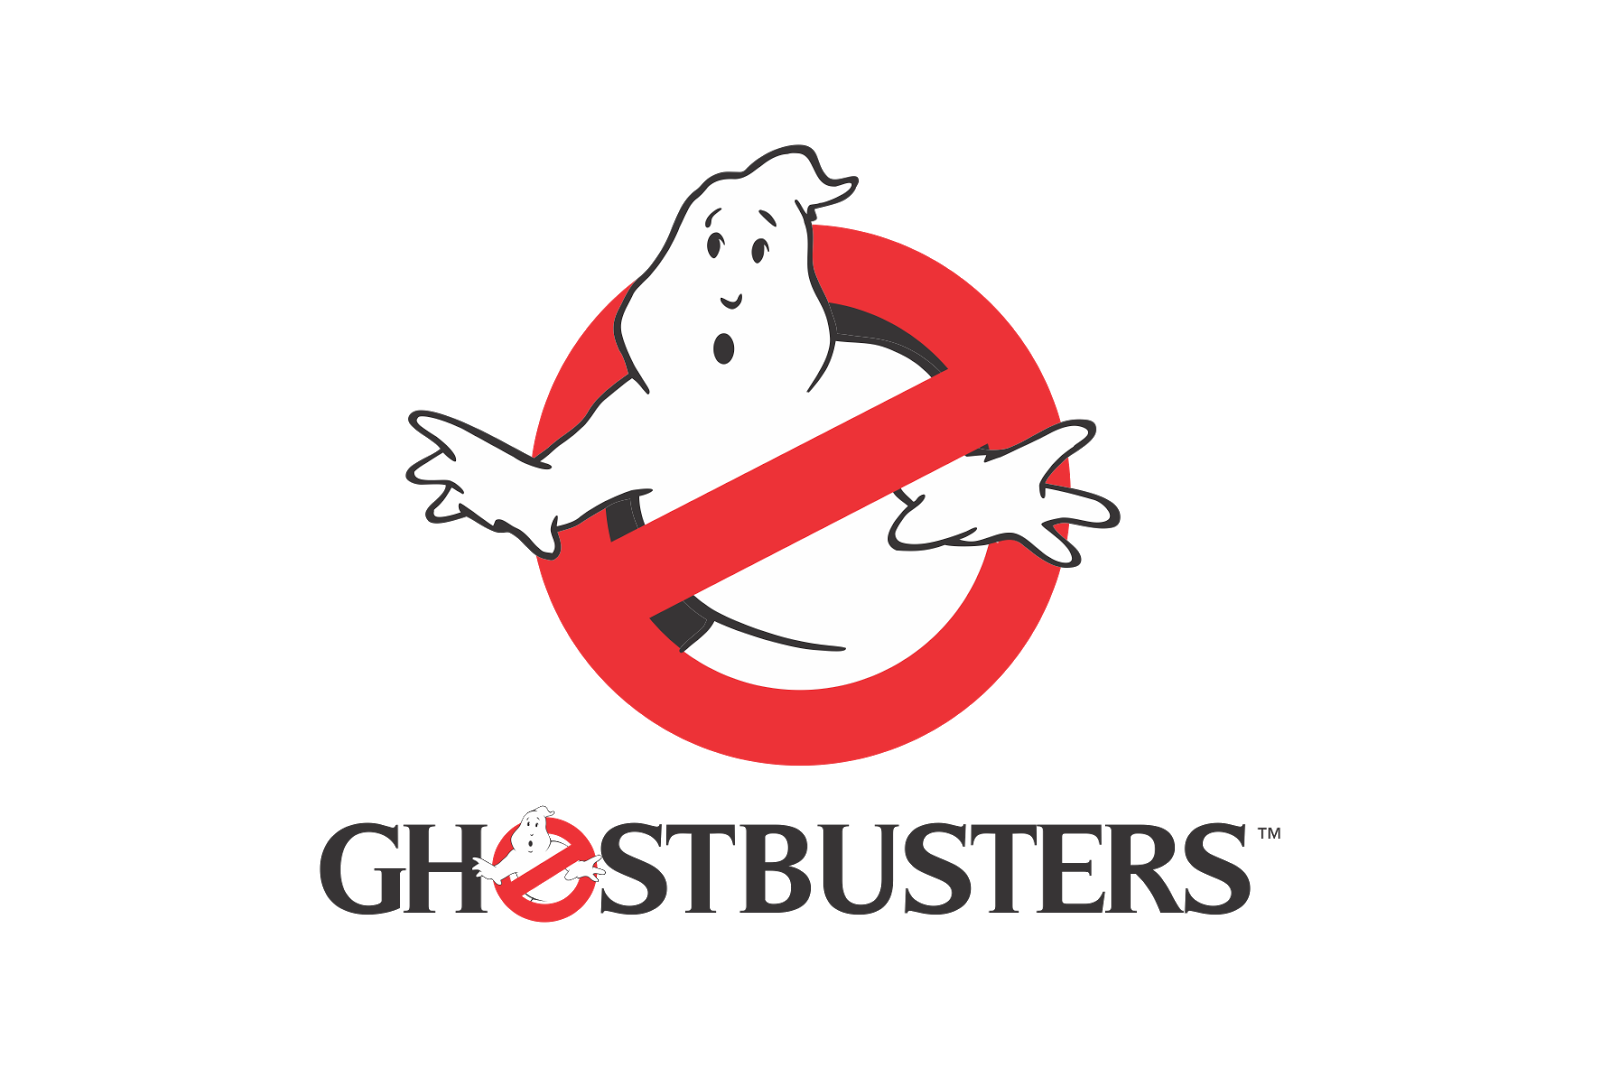 Logo Ghostbusters Png 1600 1067 Ghostbusters Female Ghostbusters Ghostbusters Reboot